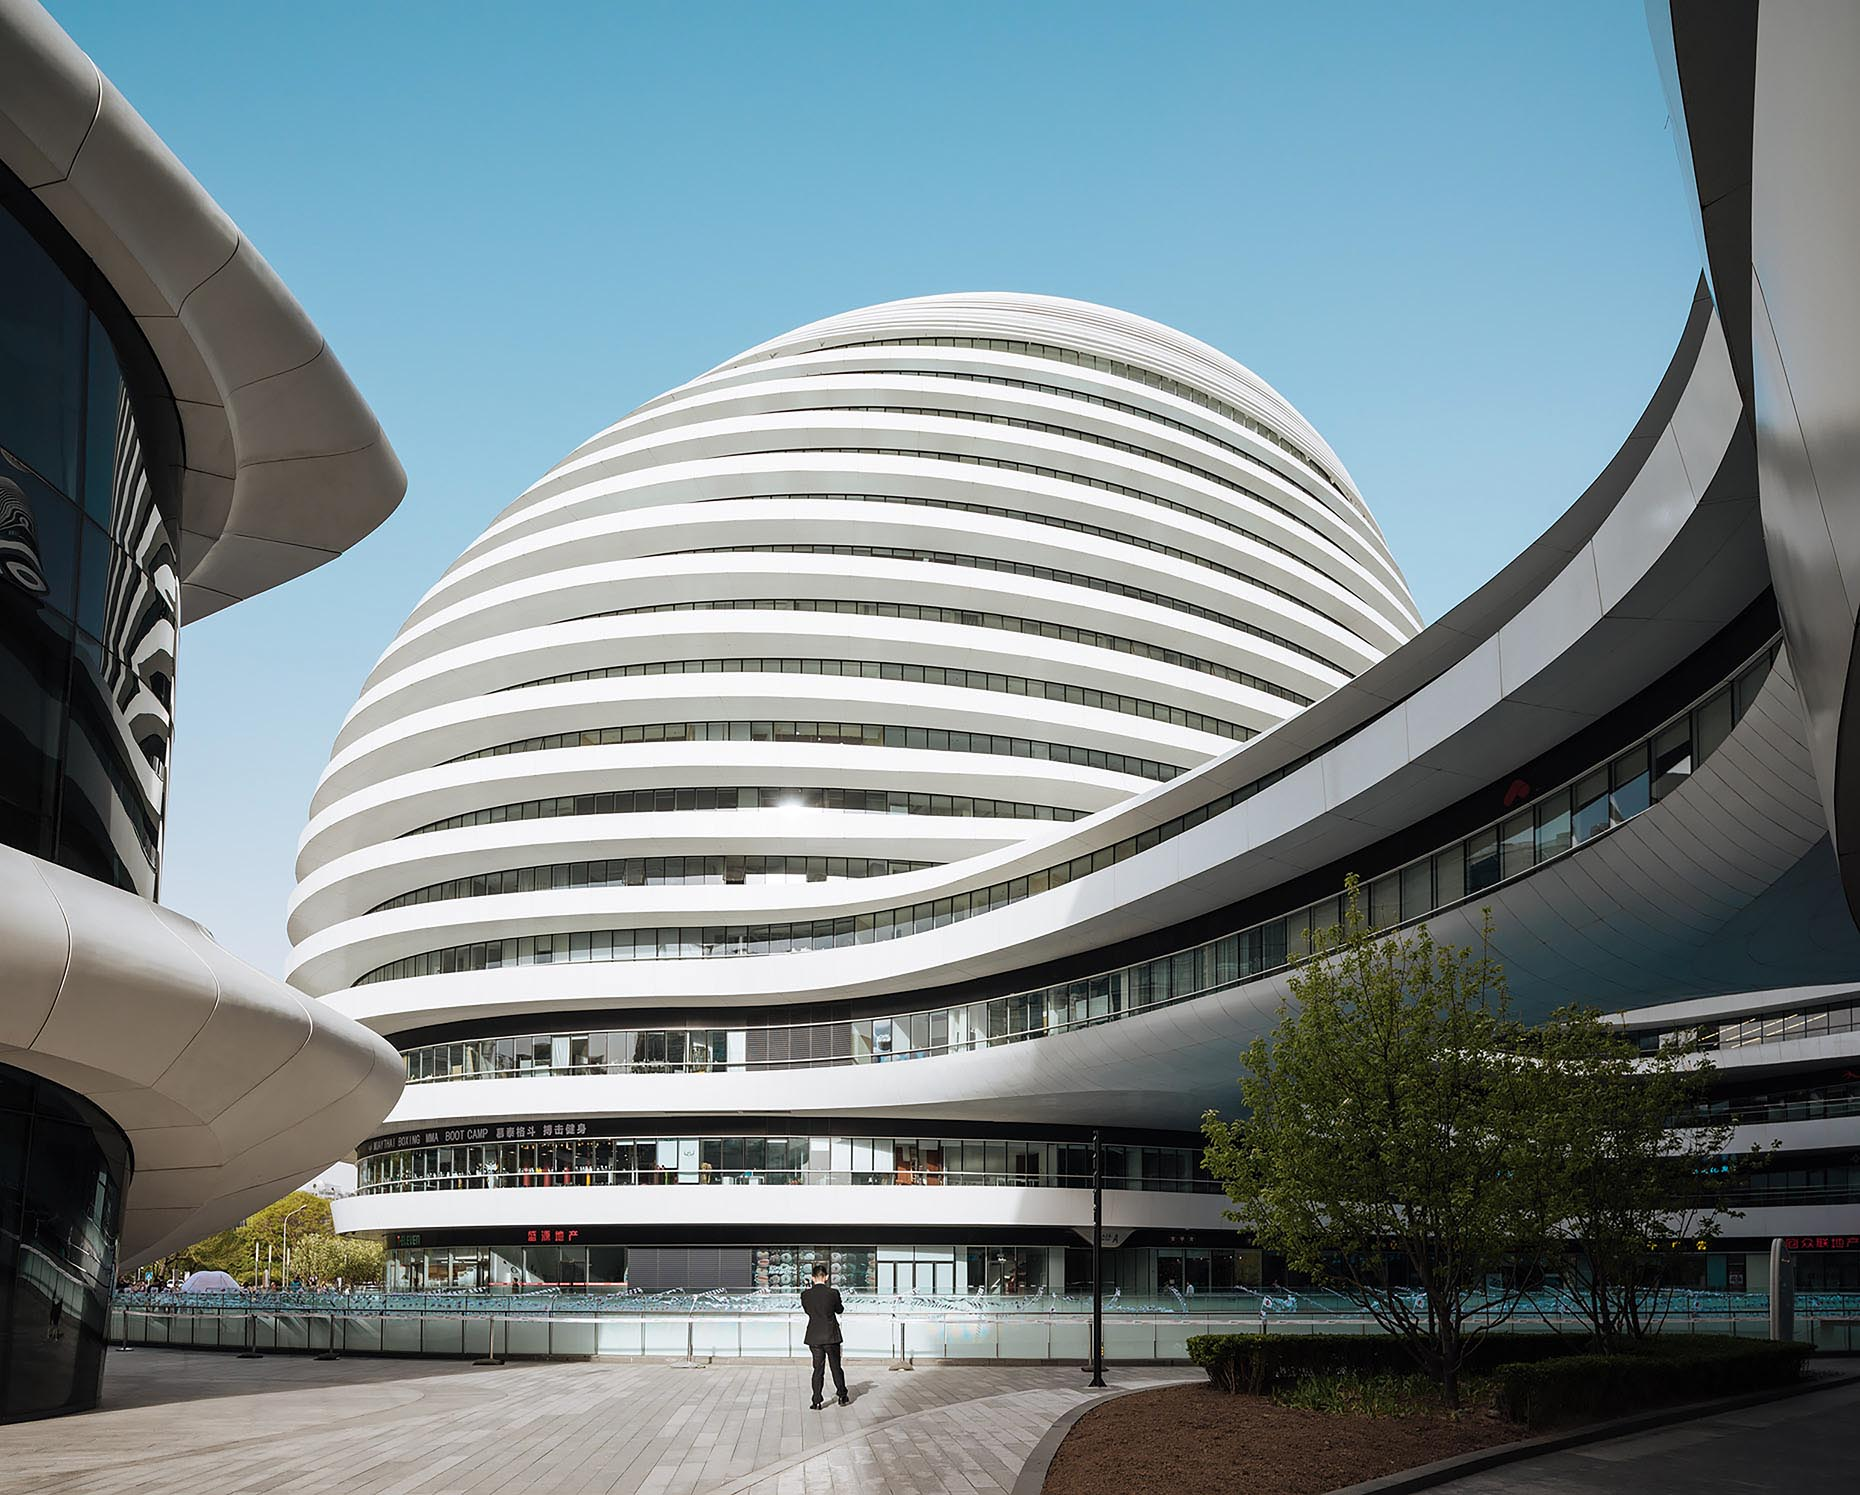 galaxy-soho-building-zaha-hadid-modern-architecture-beijing-china-23